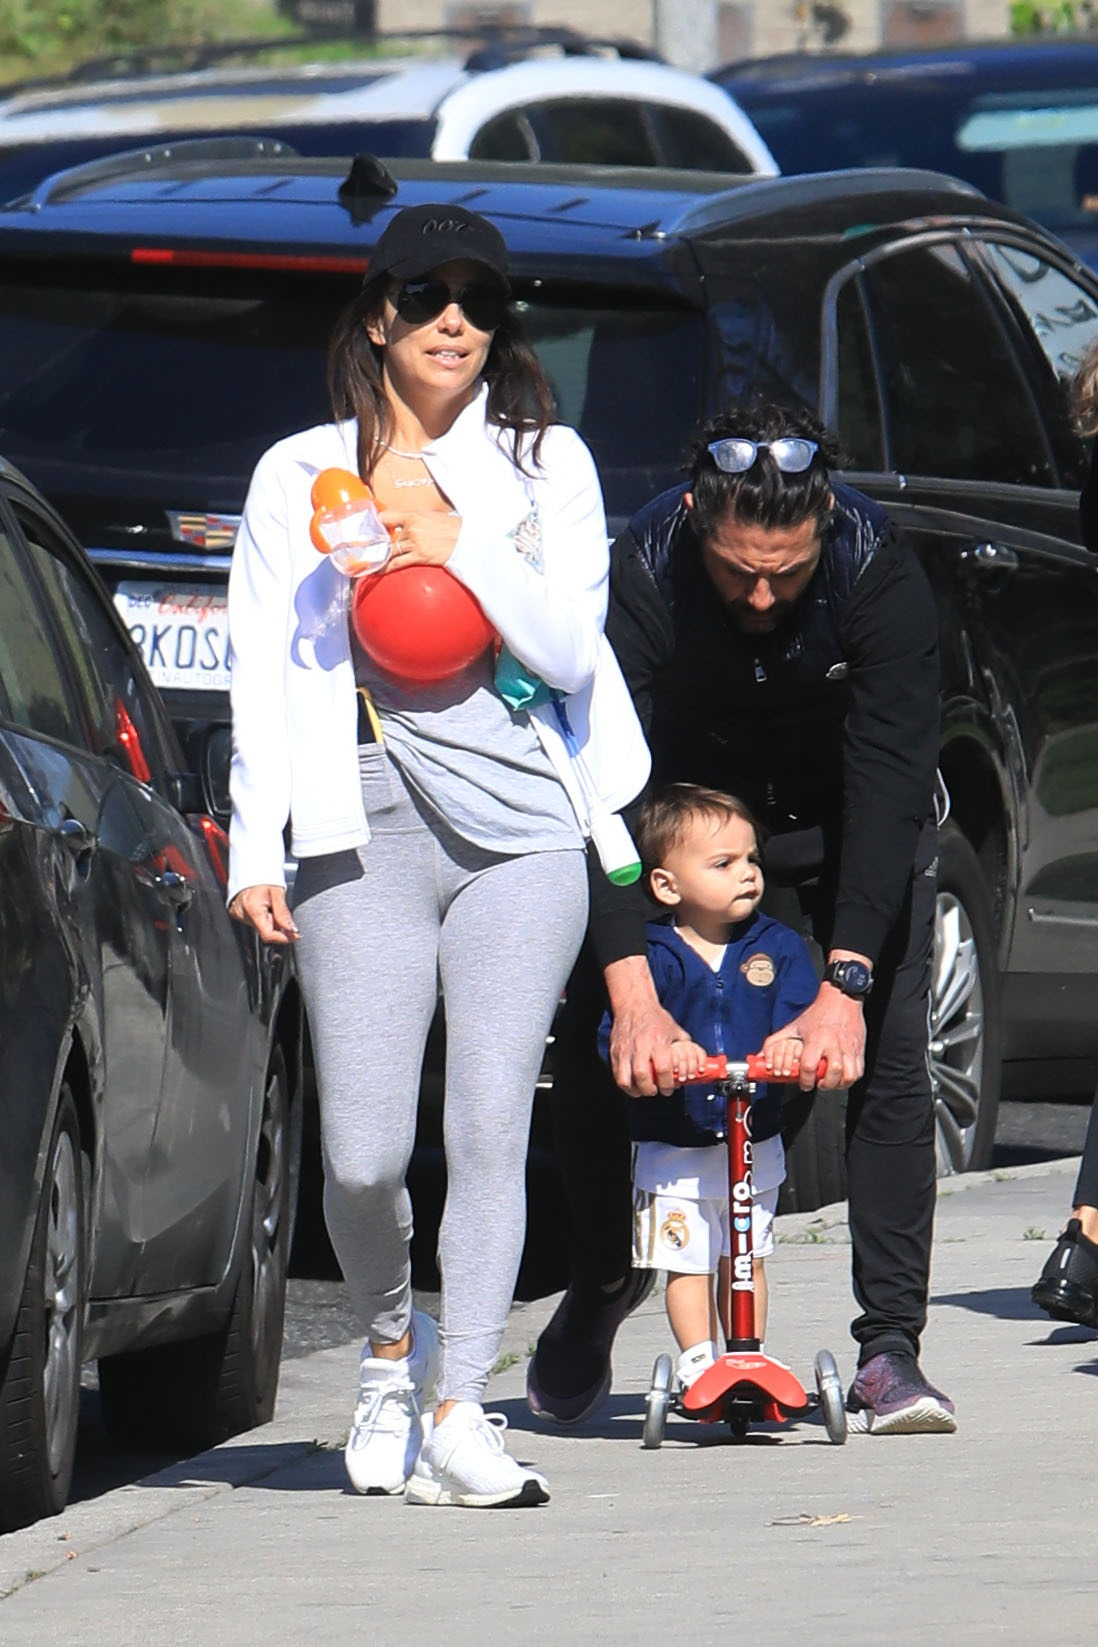 EXCLUSIVE: Eva Longoria and her husband Jose Baston takes their kid Santiago to the park in Beverly Hills **SPECIAL INSTRUCTIONS*** Please pixelate children's faces before publication.***. 03 Feb 2020, Image: 496286094, License: Rights-managed, Restrictions: World Rights, Model Release: no, Credit line: MEGA / The Mega Agency / Profimedia